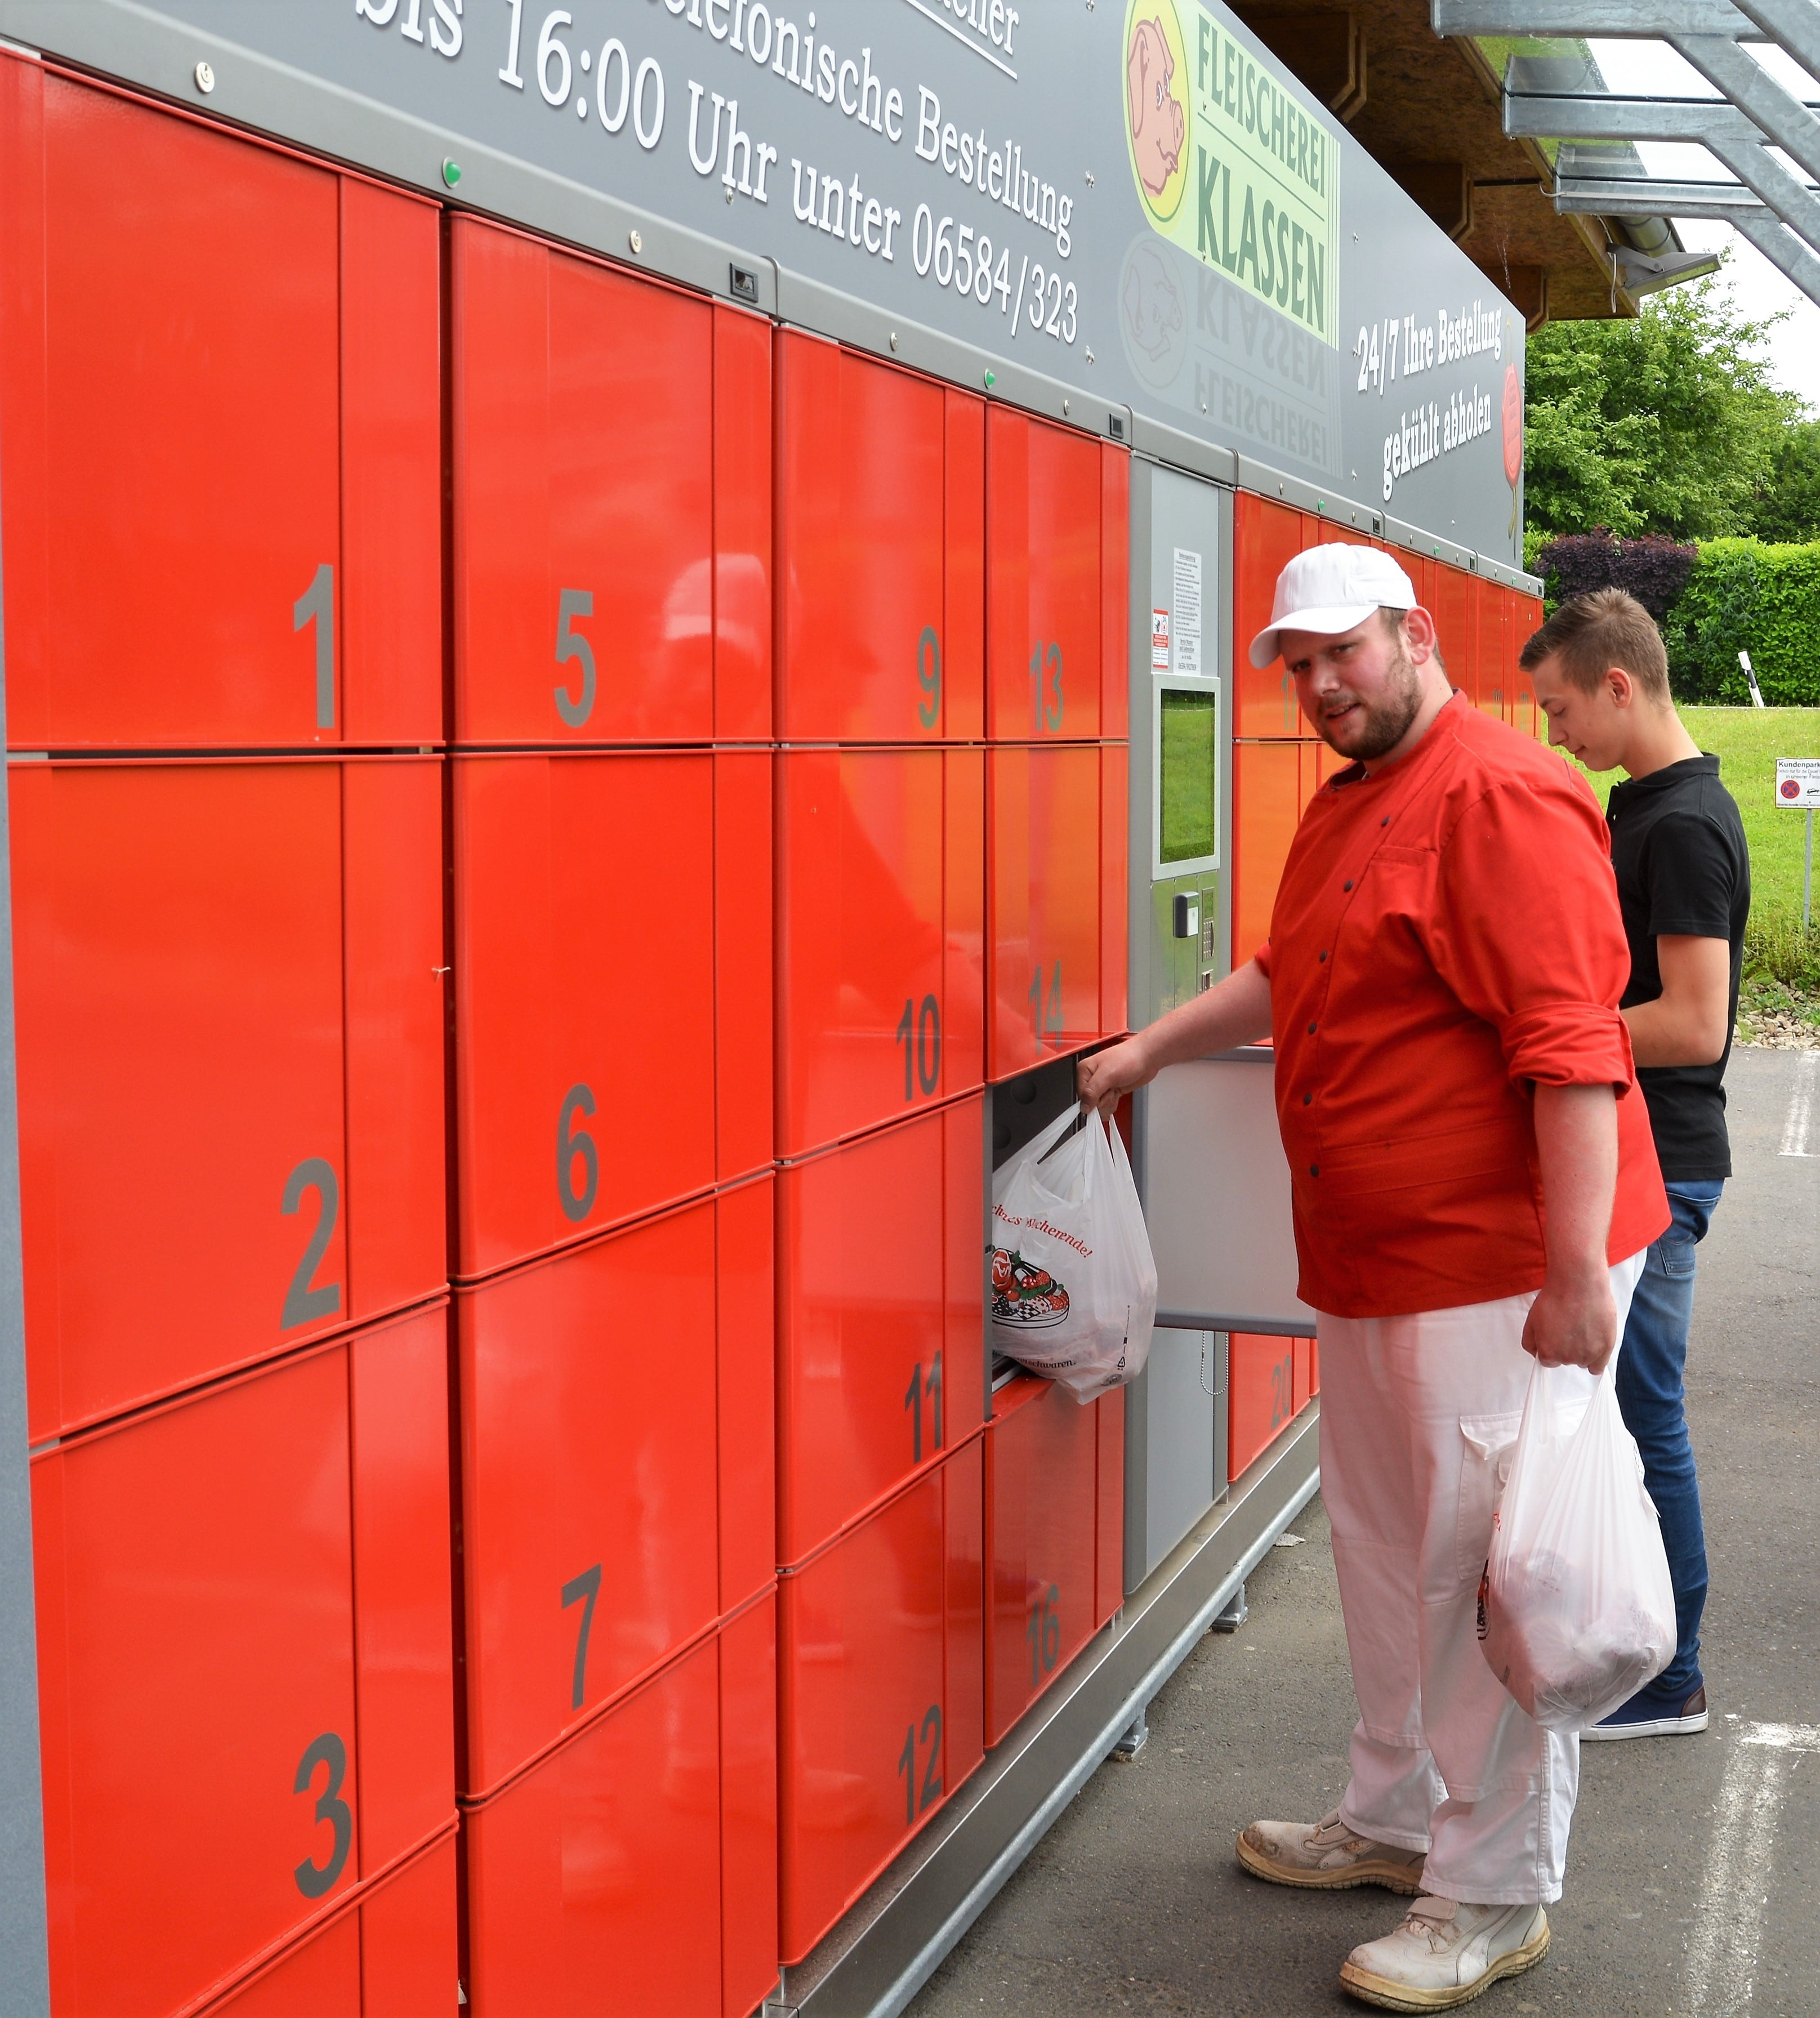 Pickup station cool lockers. Temperature-controlled lockers partly covered outdoors. Pickup station for butchers: the customer orders conveniently online or by phone, the butcher delivers the order to the smart locker system and the customer can pick up the goods at any time. The Click & Collect system allows easy collection and the products are always fresh thanks to the cooling technology.